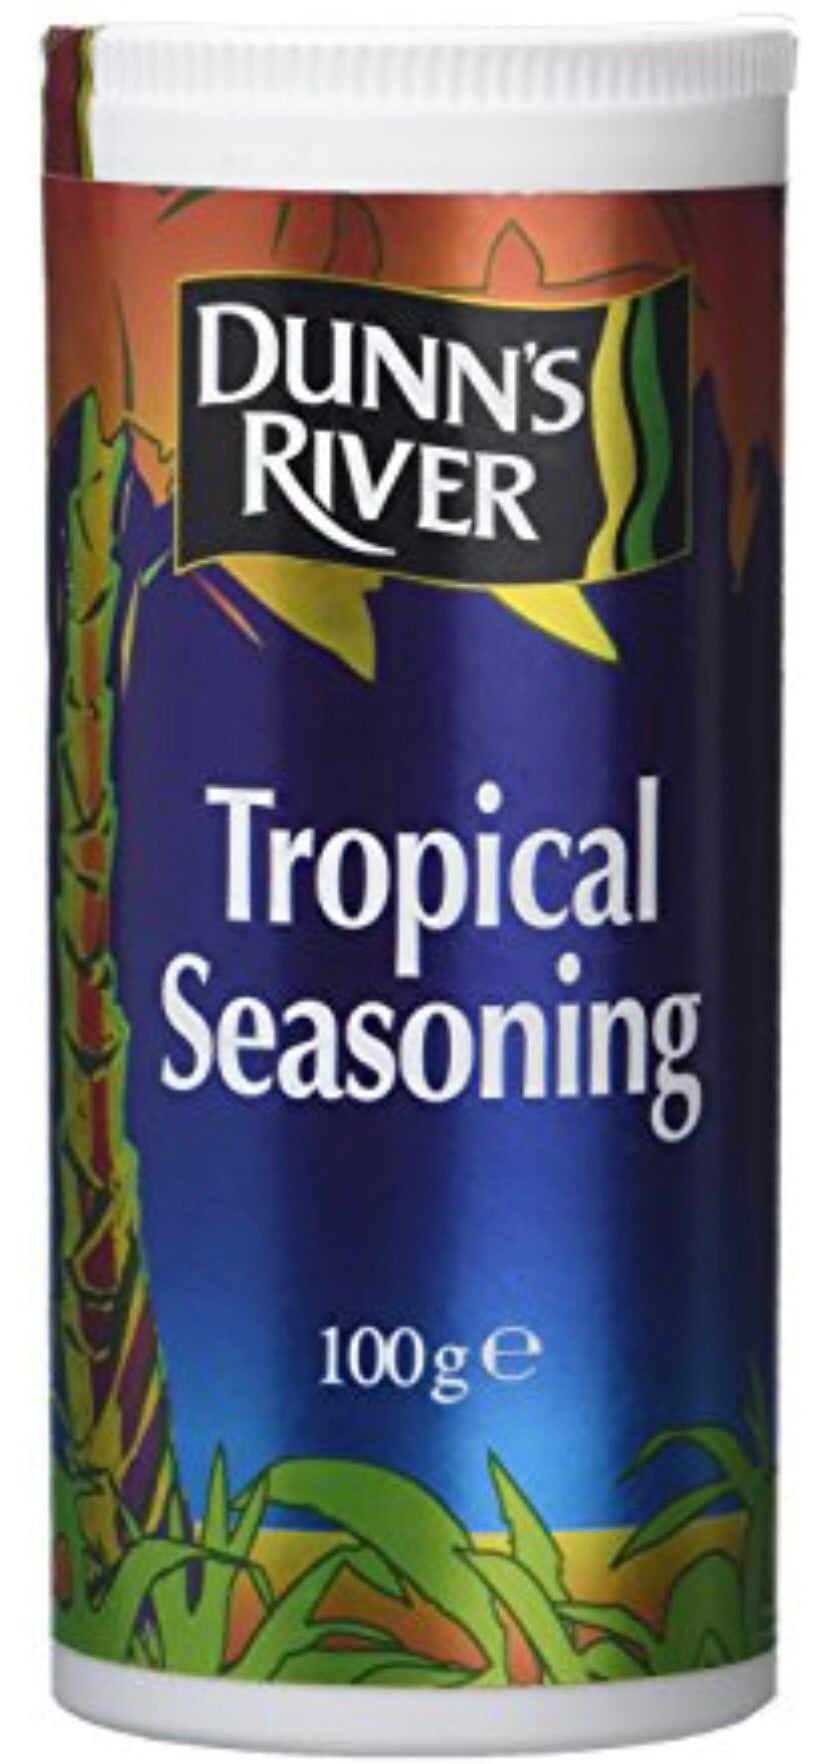 Dunn's River Tropical Seasoning - Evansfoods